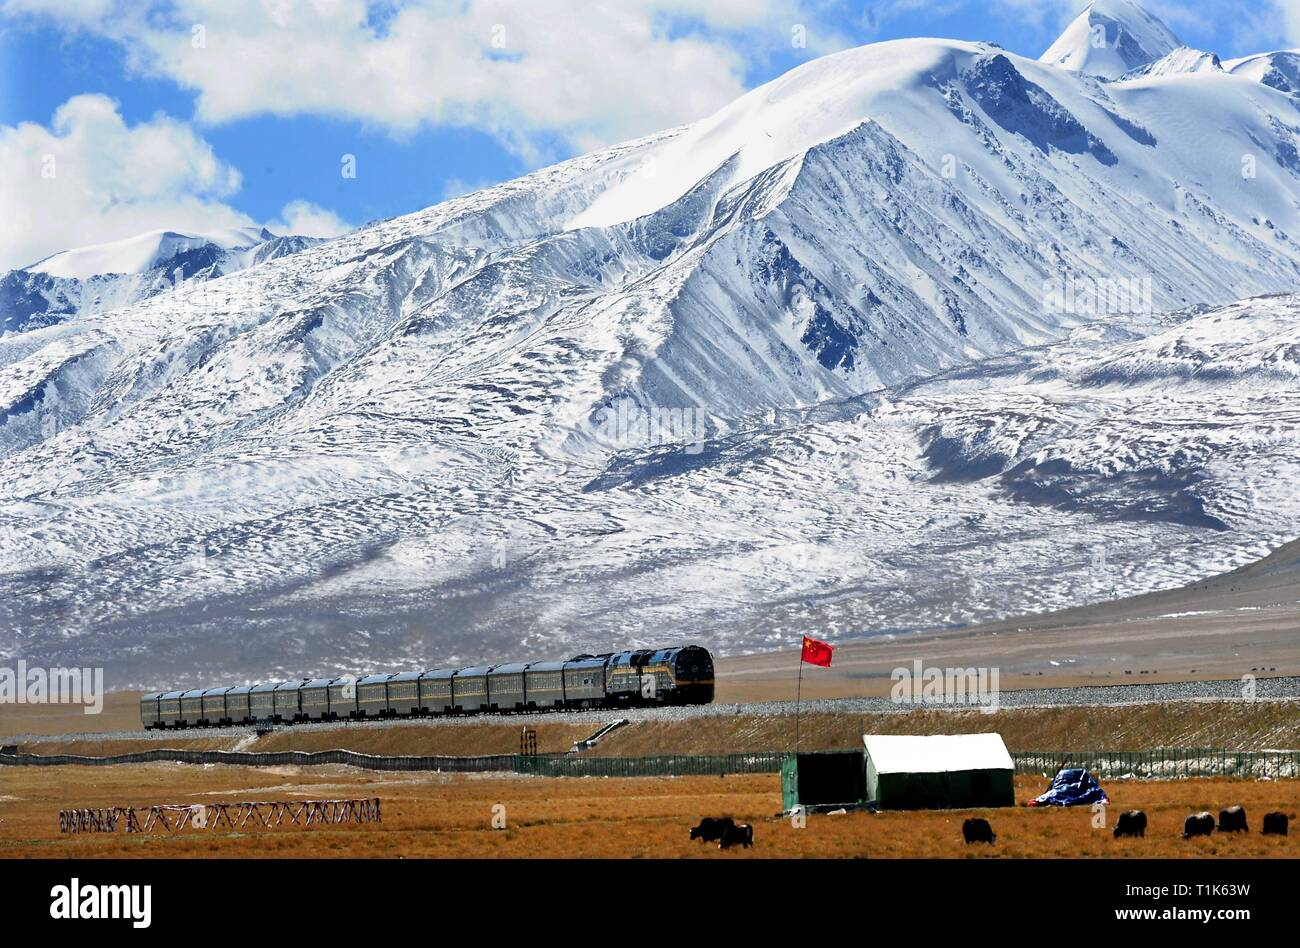 Beijing, China's Tibet Autonomous Region. 28th Sep, 2014. A train is going on the Nagqu section of Qinghai-Tibet railway, southwest China's Tibet Autonomous Region, Sept. 28, 2014. Credit: Wang Song/Xinhua/Alamy Live News - Stock Image